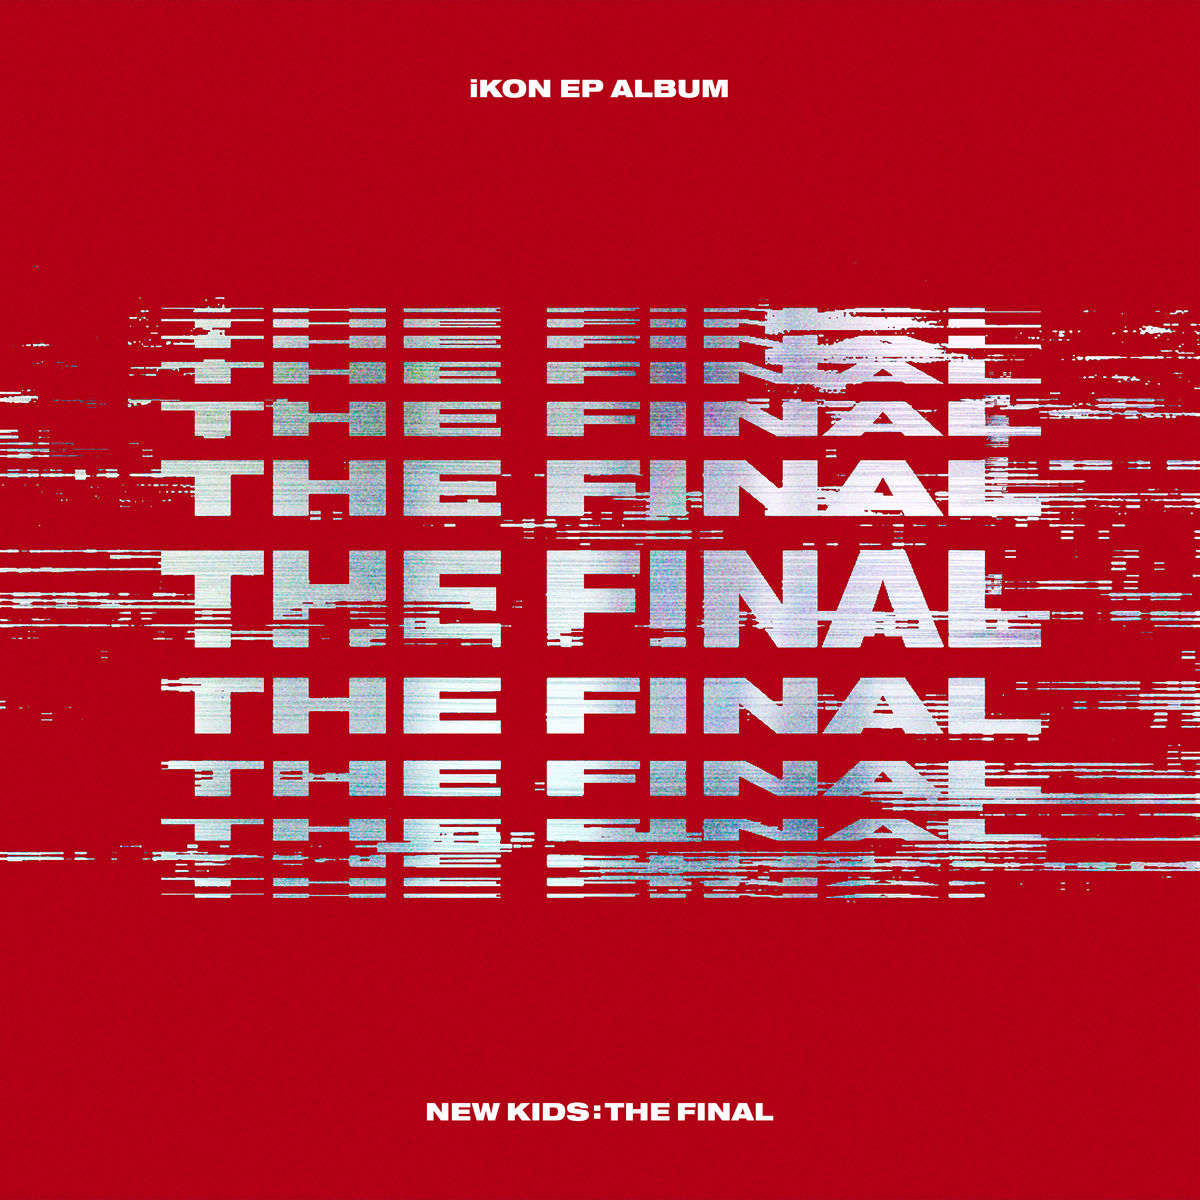 iKON - New Kids: The Final